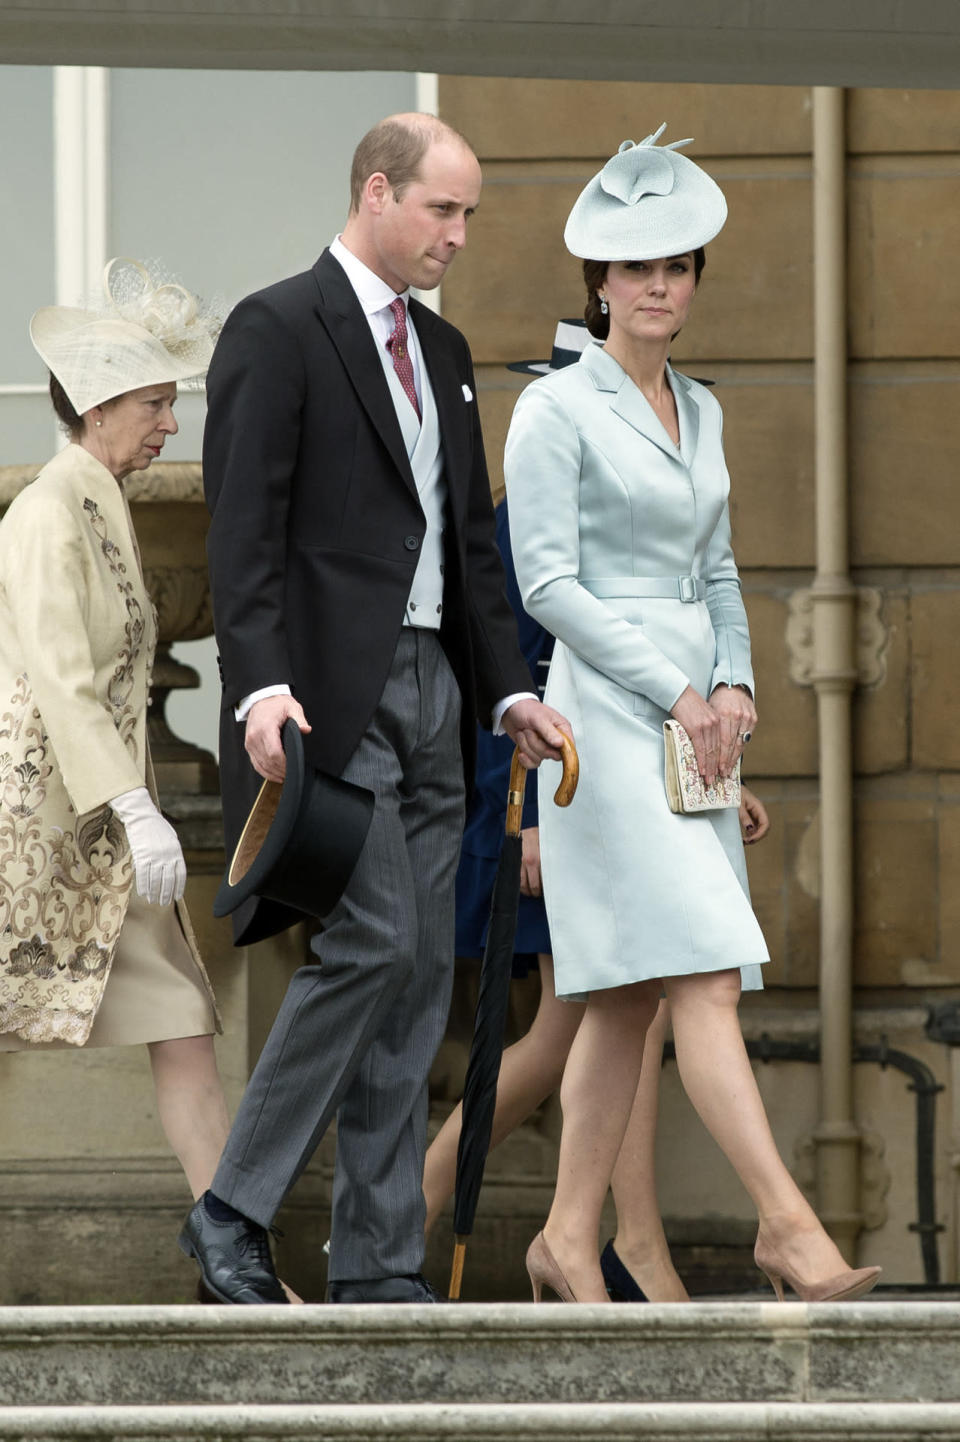 <p>Kate attended the Queen's first garden party of 2017 wearing an icy blue coat dress by Christopher Kane. This was the third time the Duchess had worn the pastel style, first sporting the look at the 2012 Olympics Opening Ceremony. A matching Lock & Co hat and suede Gianvito Rossi heels finished off the ensemble.</p><p><i>[Photo: PA]</i></p>